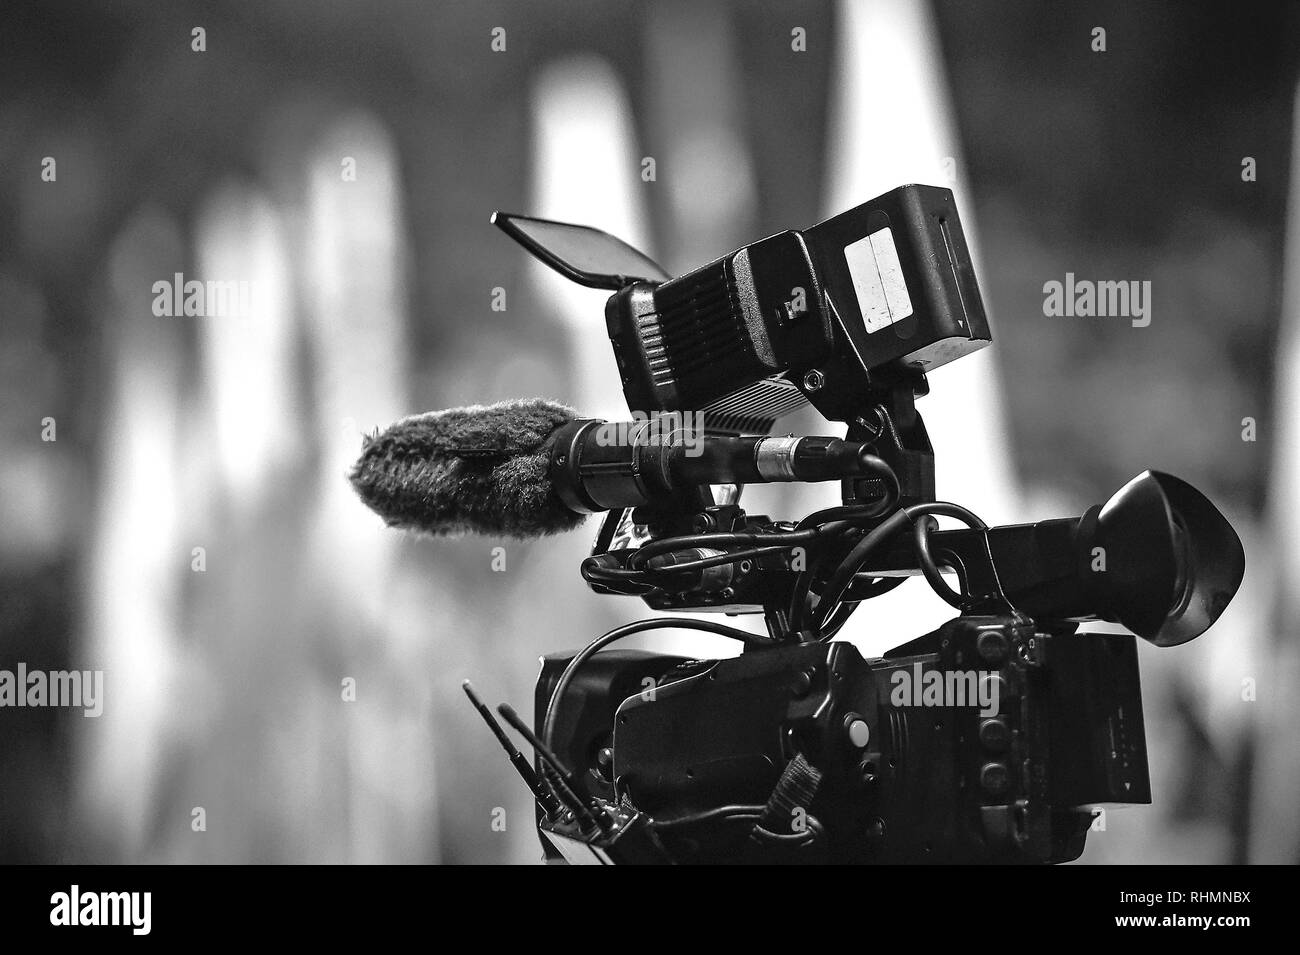 Modern digital television or video camera, camcorder, recorder in studio on blurred colorful background. Broadcasting, media, entertainment - Stock Image